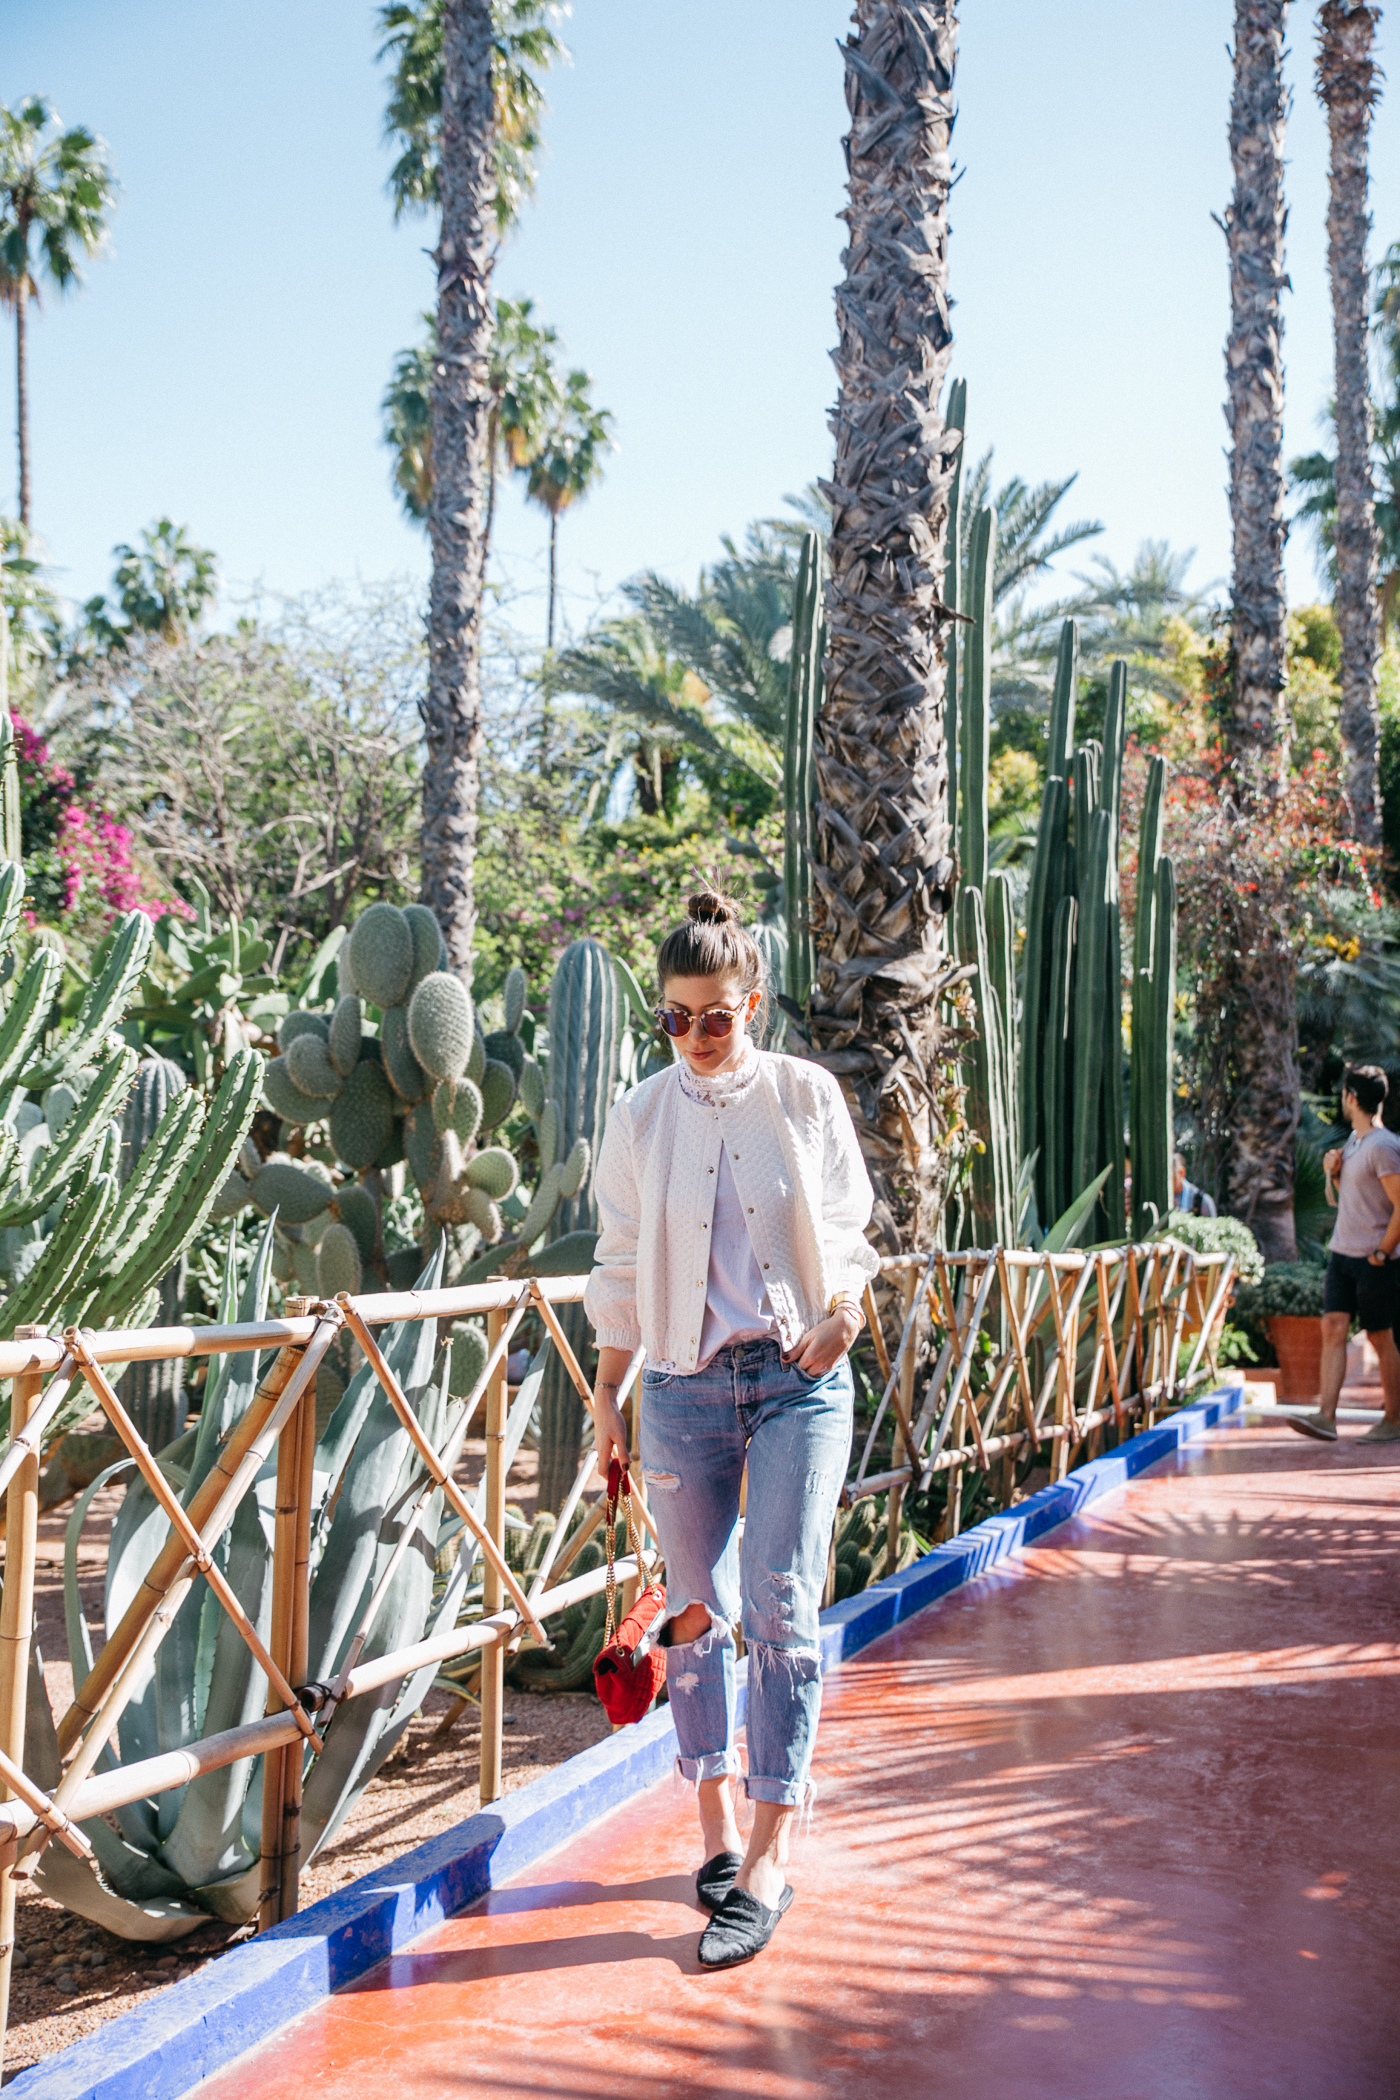 Le jardin majorelle marrakech yves saint laurent garden for Jardin yves saint laurent